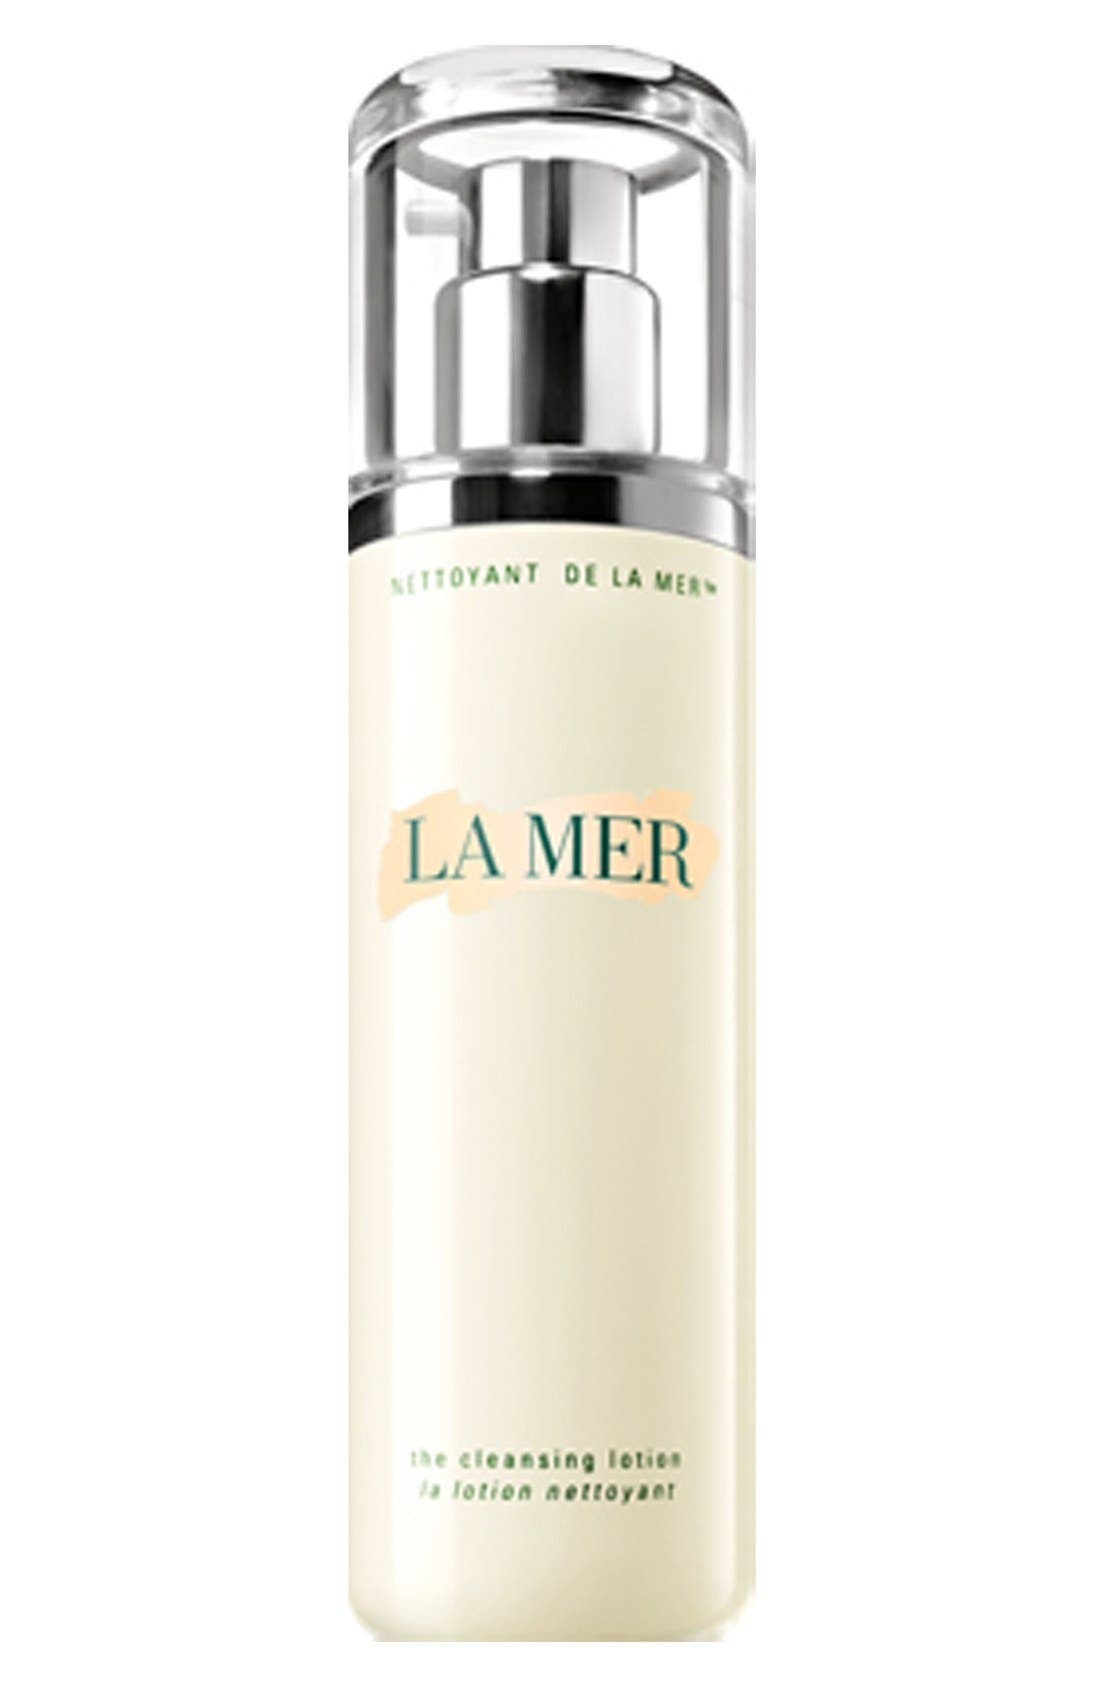 La Mer 'The Cleansing Lotion'